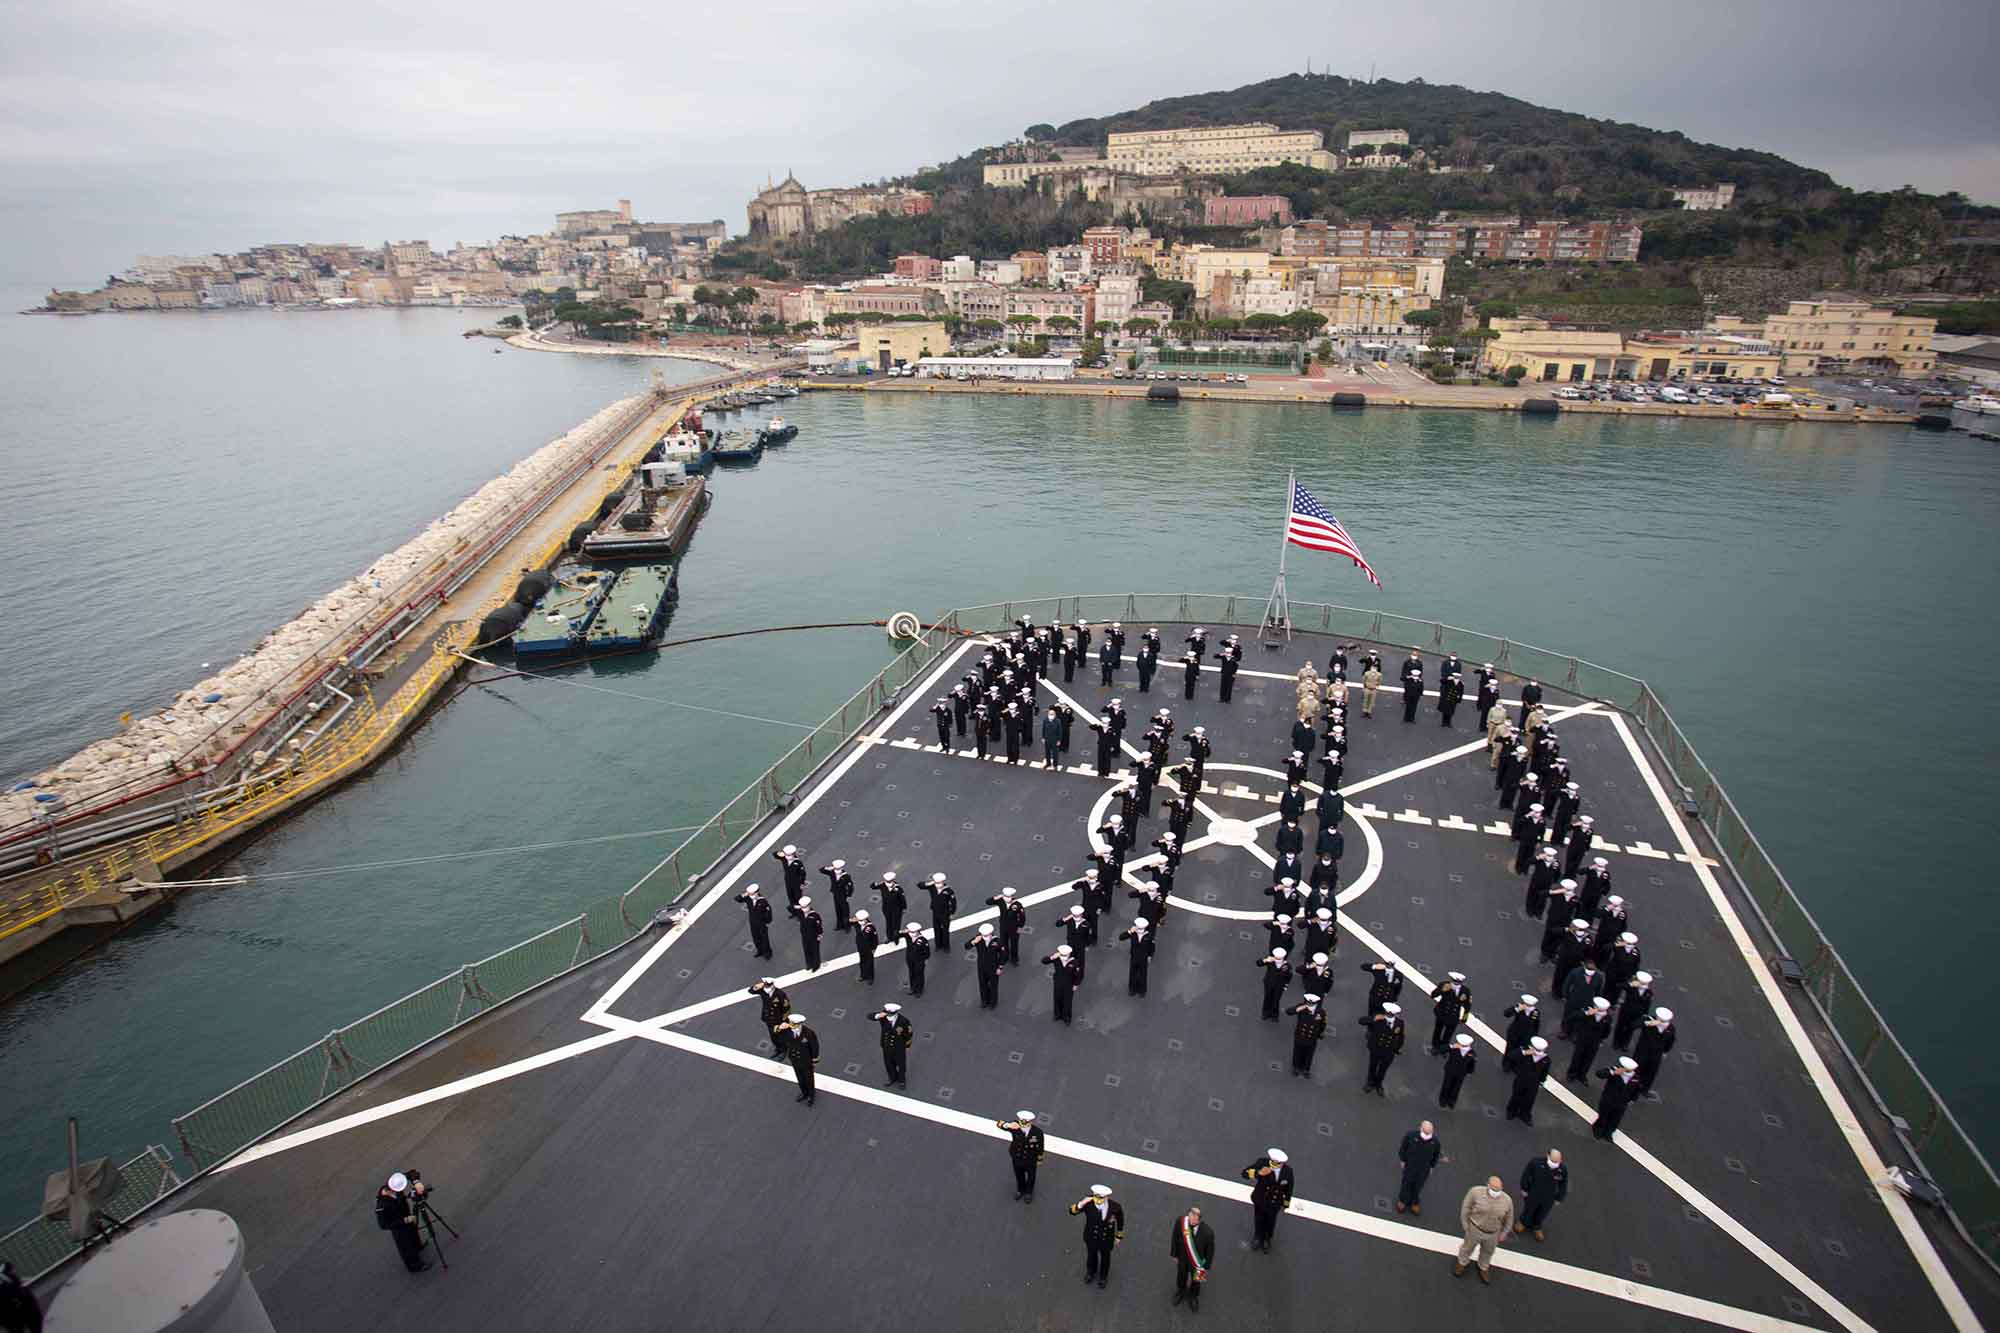 The crew of the USS Mount Whitney stands in formation during the ship's 50th anniversary celebration in Gaeta, Italy, Jan. 14, 2021. (Petty Officer 2nd Class Jared Kercell/Navy)